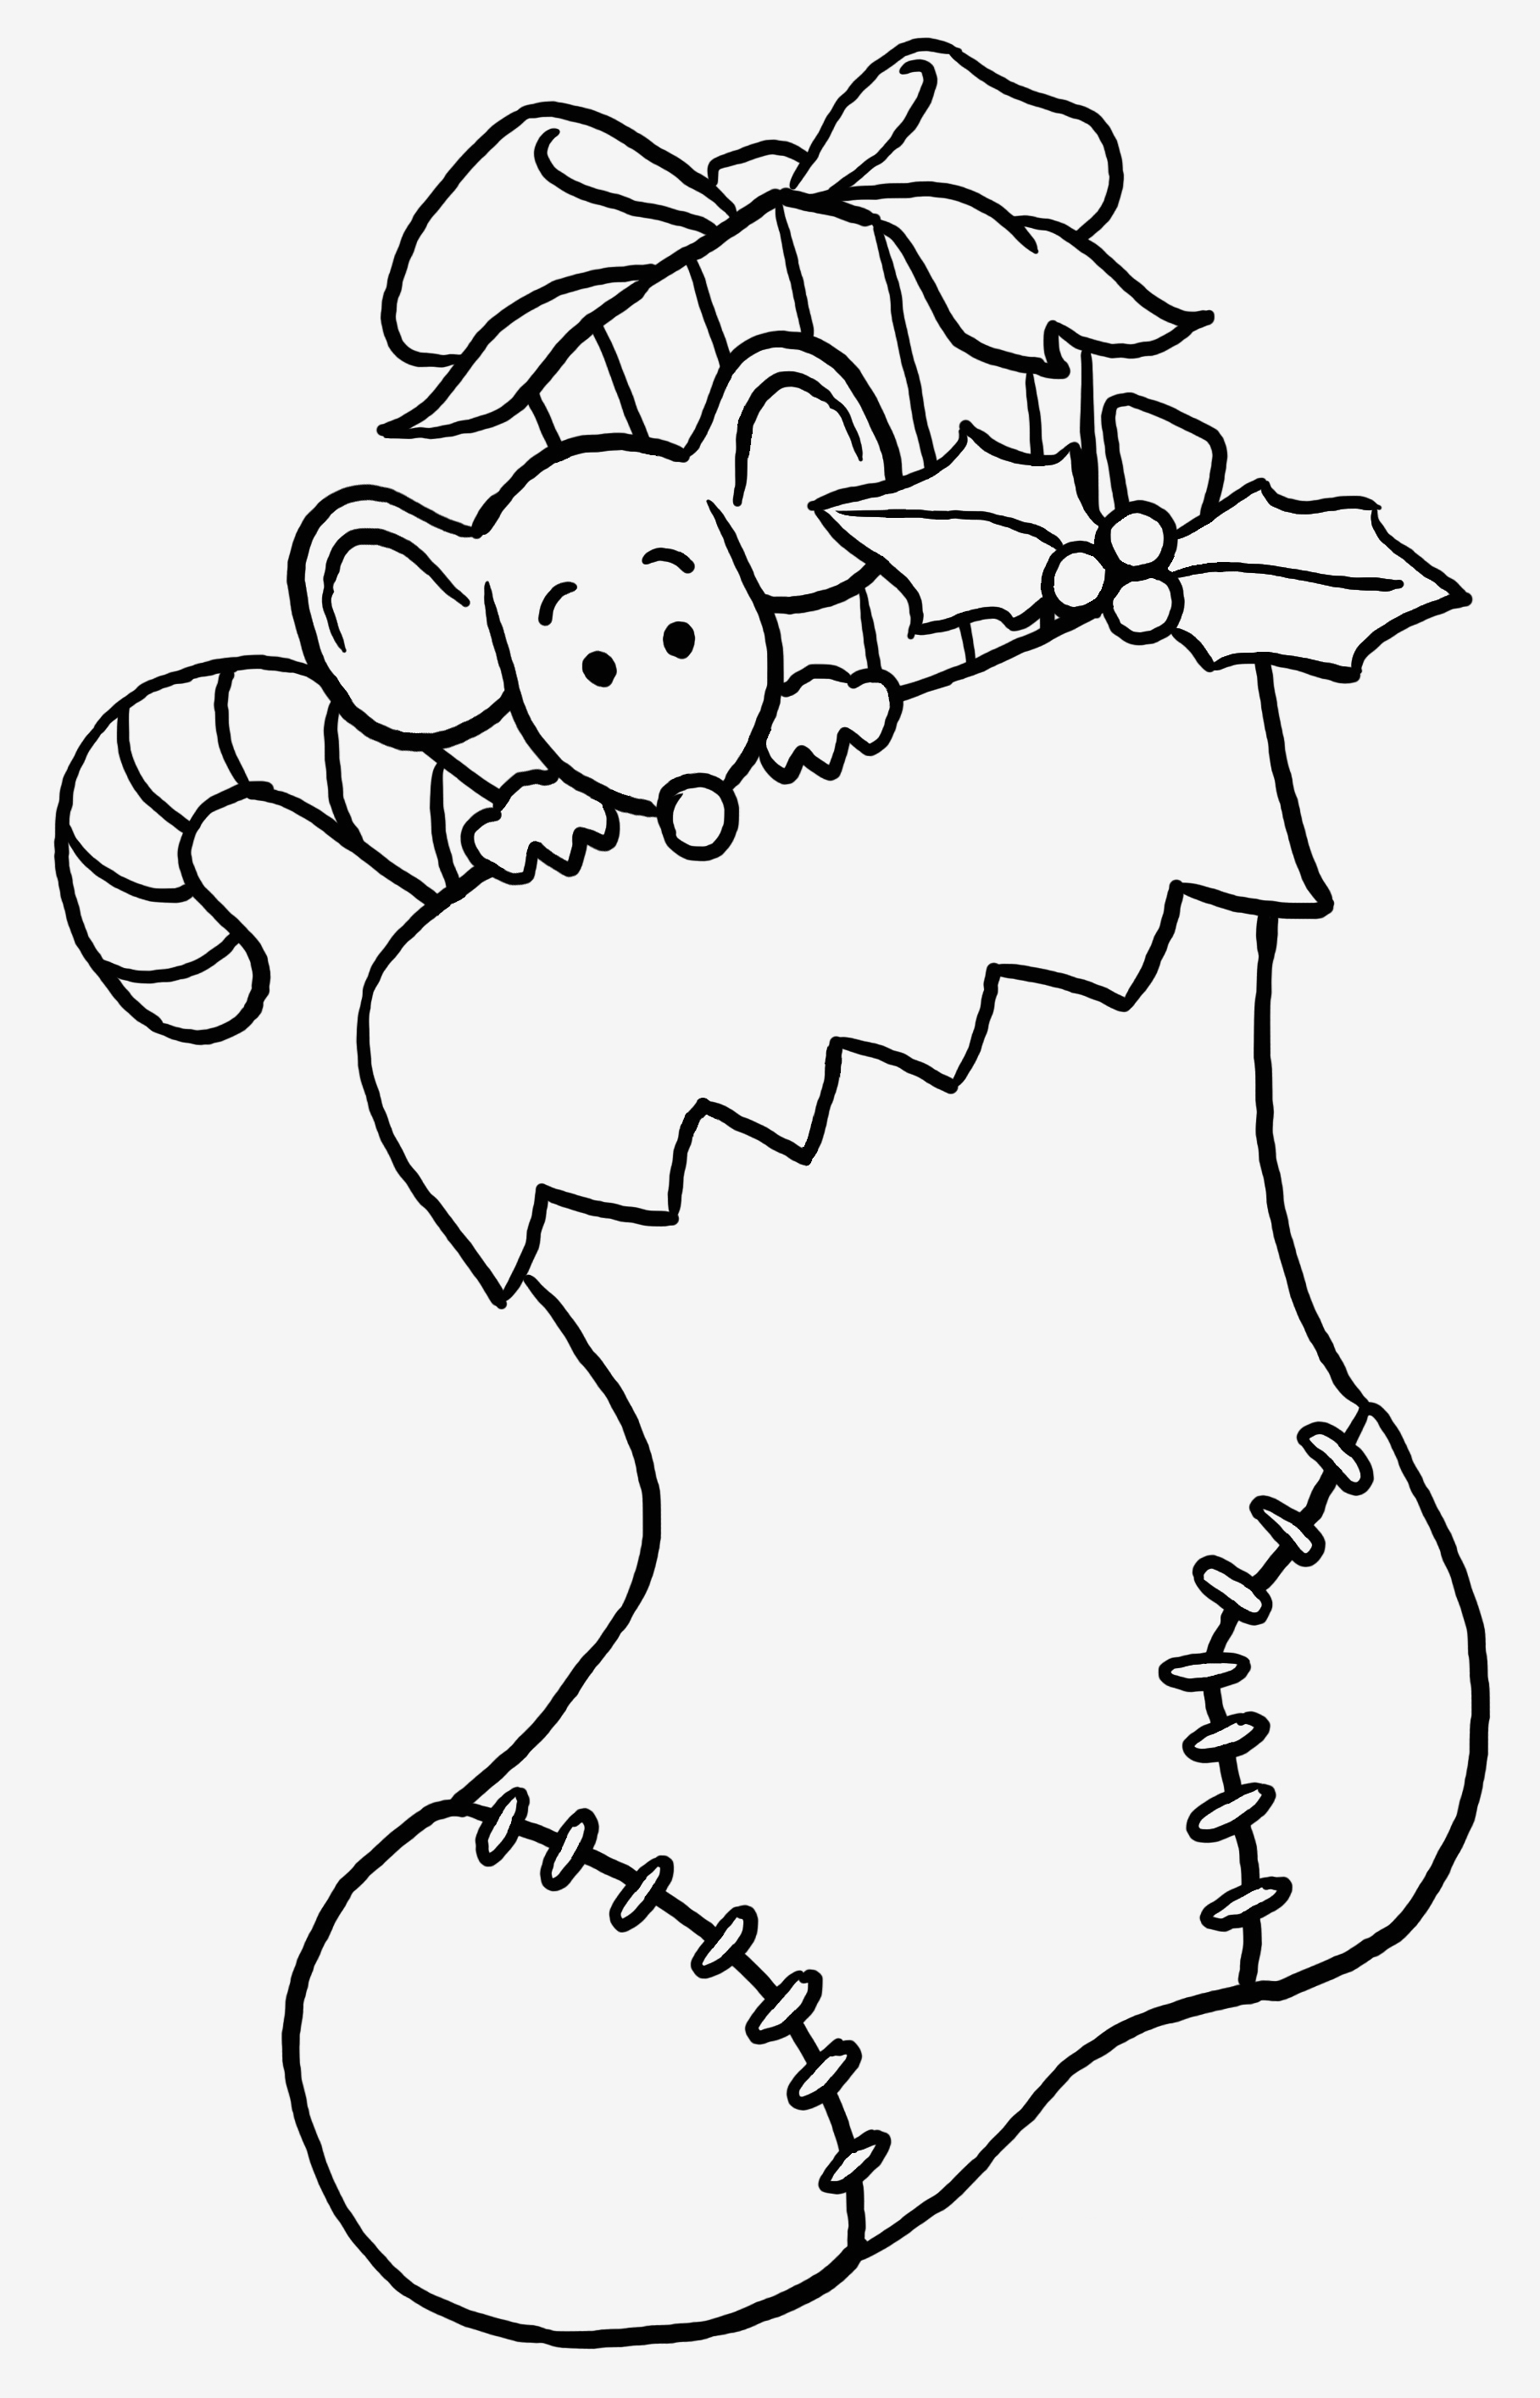 Christmas Colouring Pages For School With Printable Coloring Page Kids